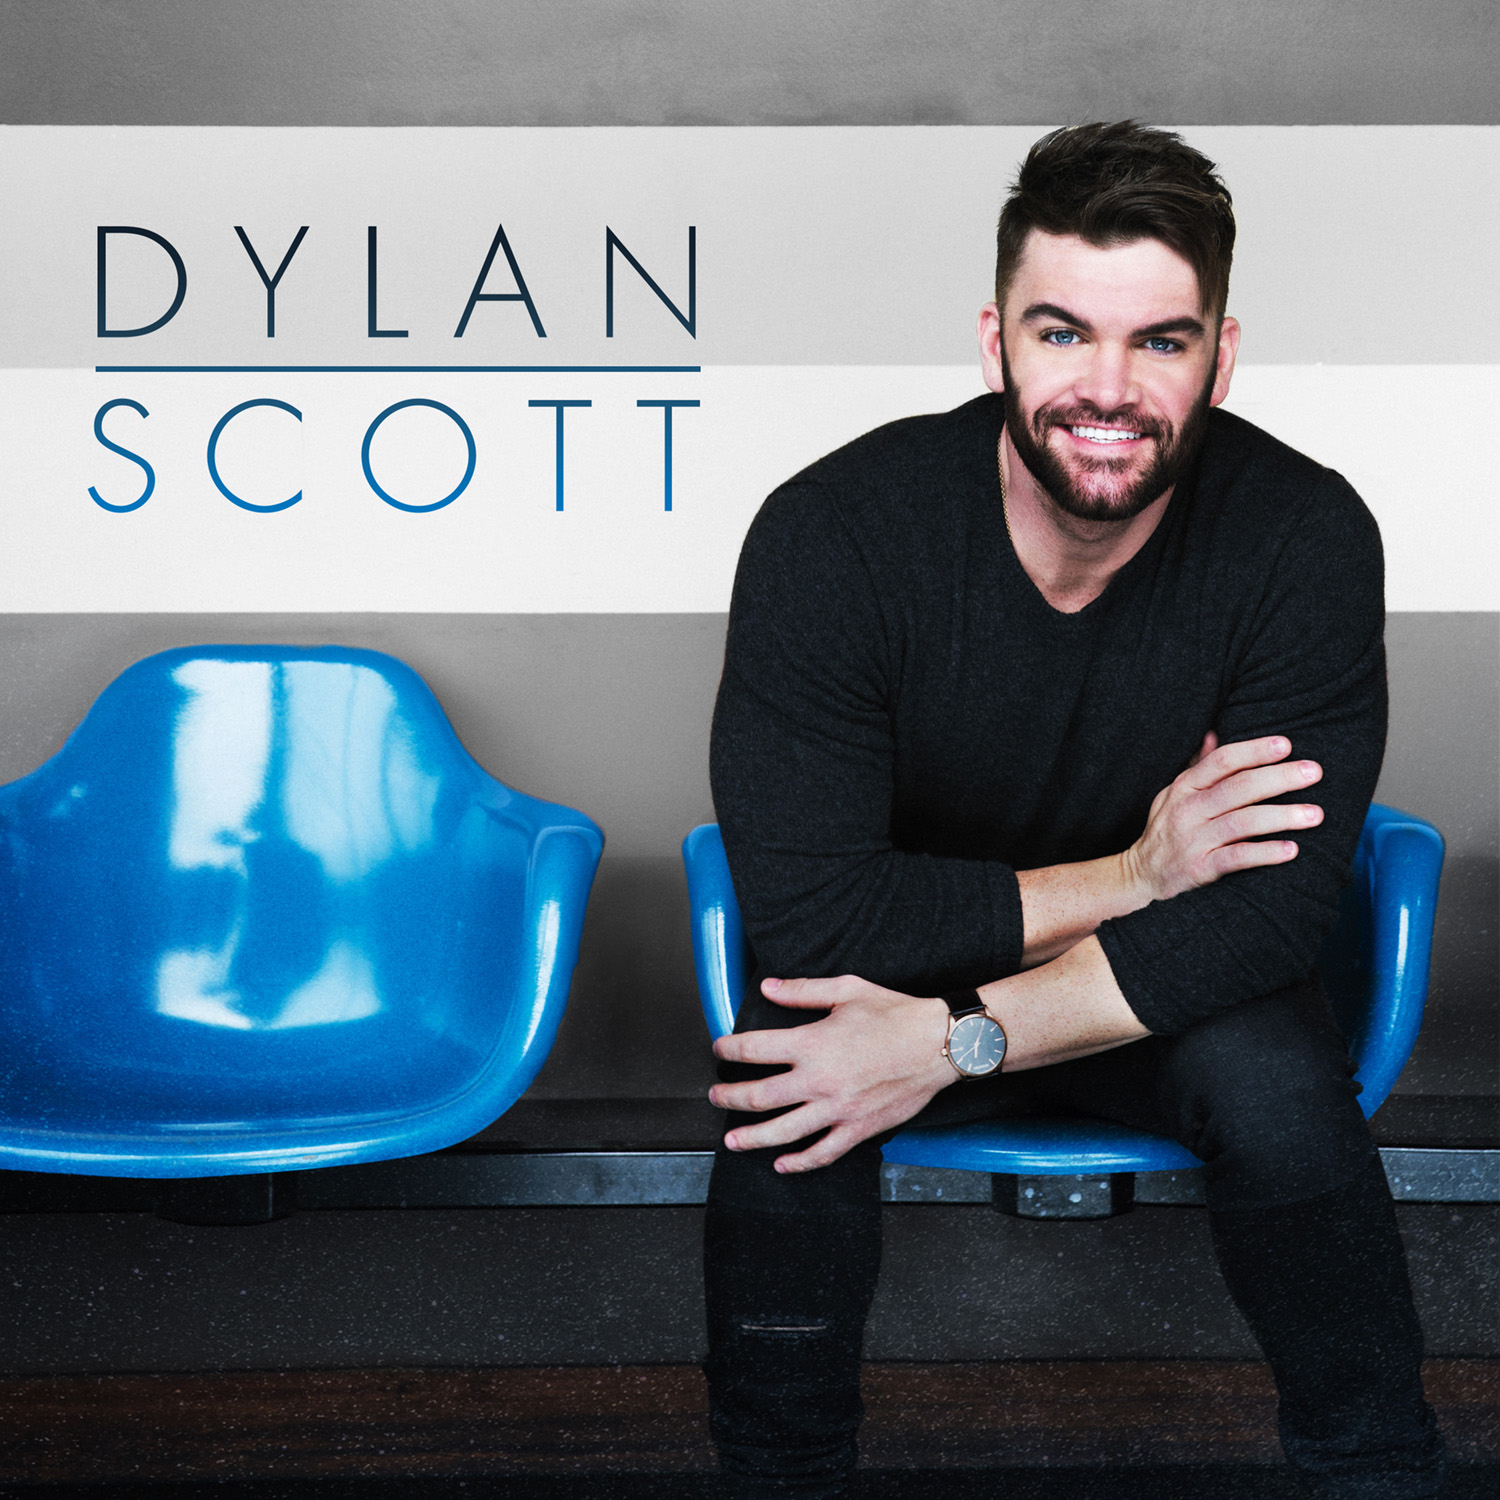 Dylan Scott Music Widget Retail Links Purchase Order Pre-save Pre-sale Stream